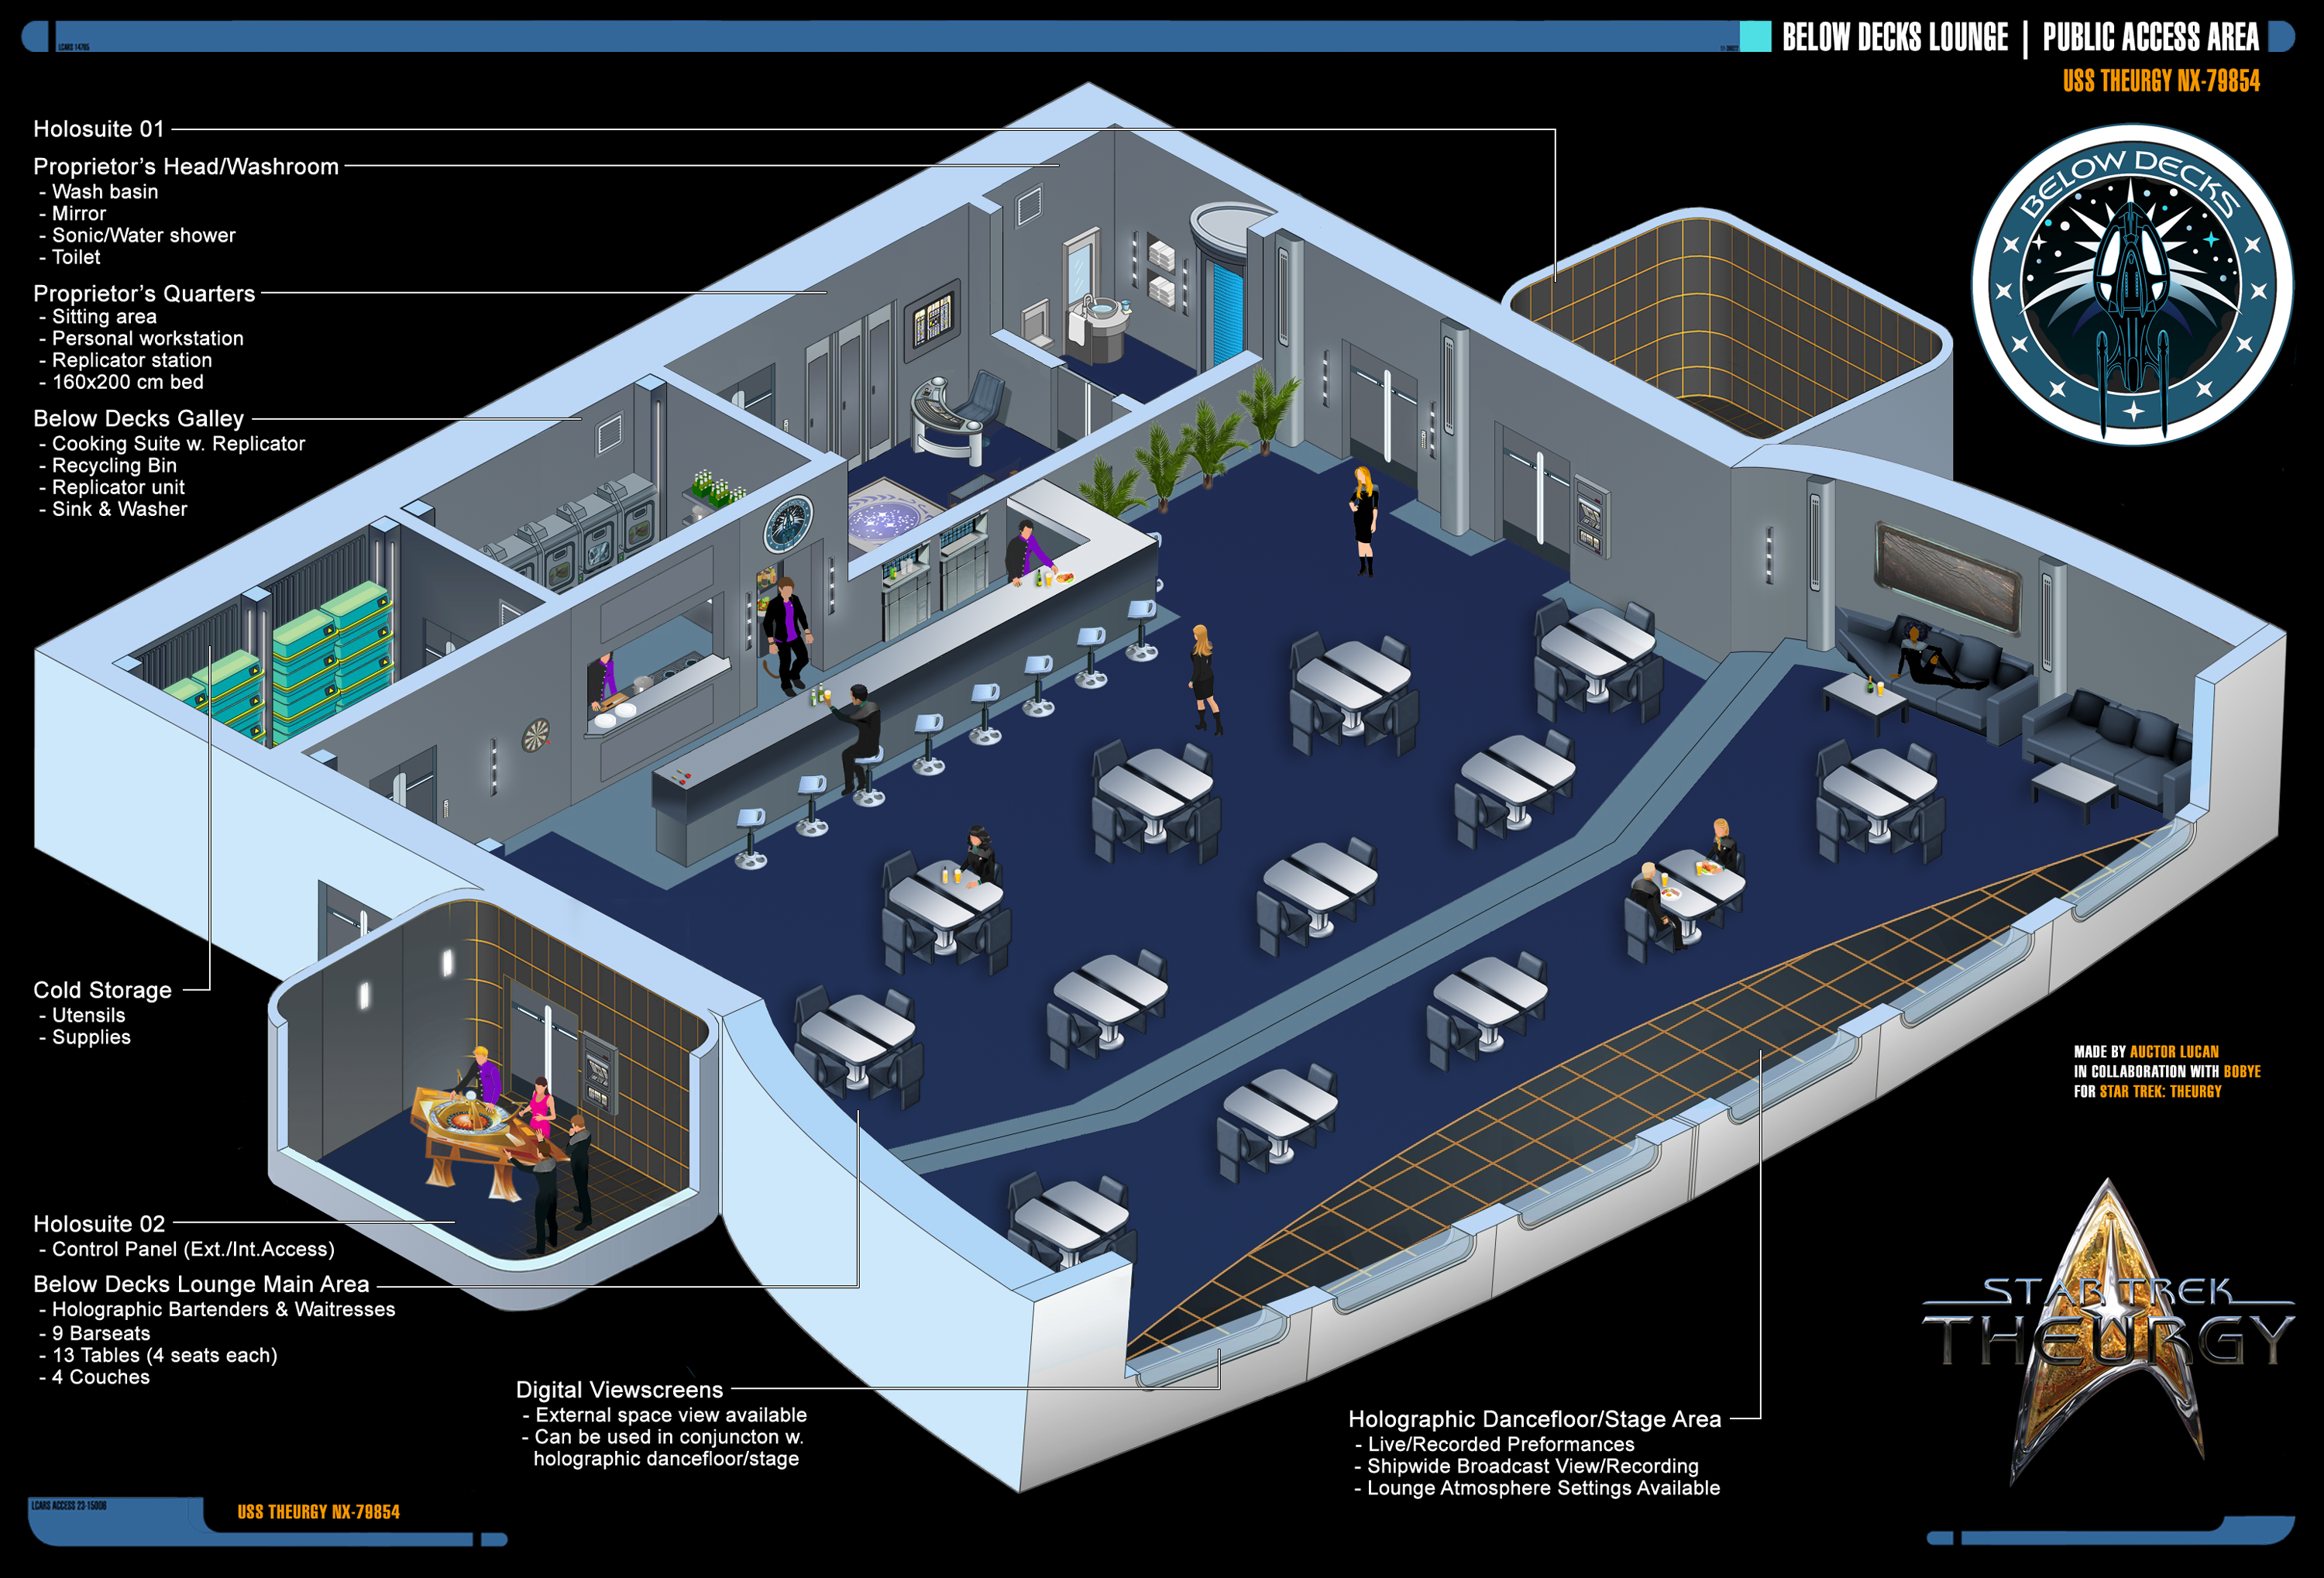 Star trek theurgy below decks lounge by auctor lucan-d9ak3iy.png